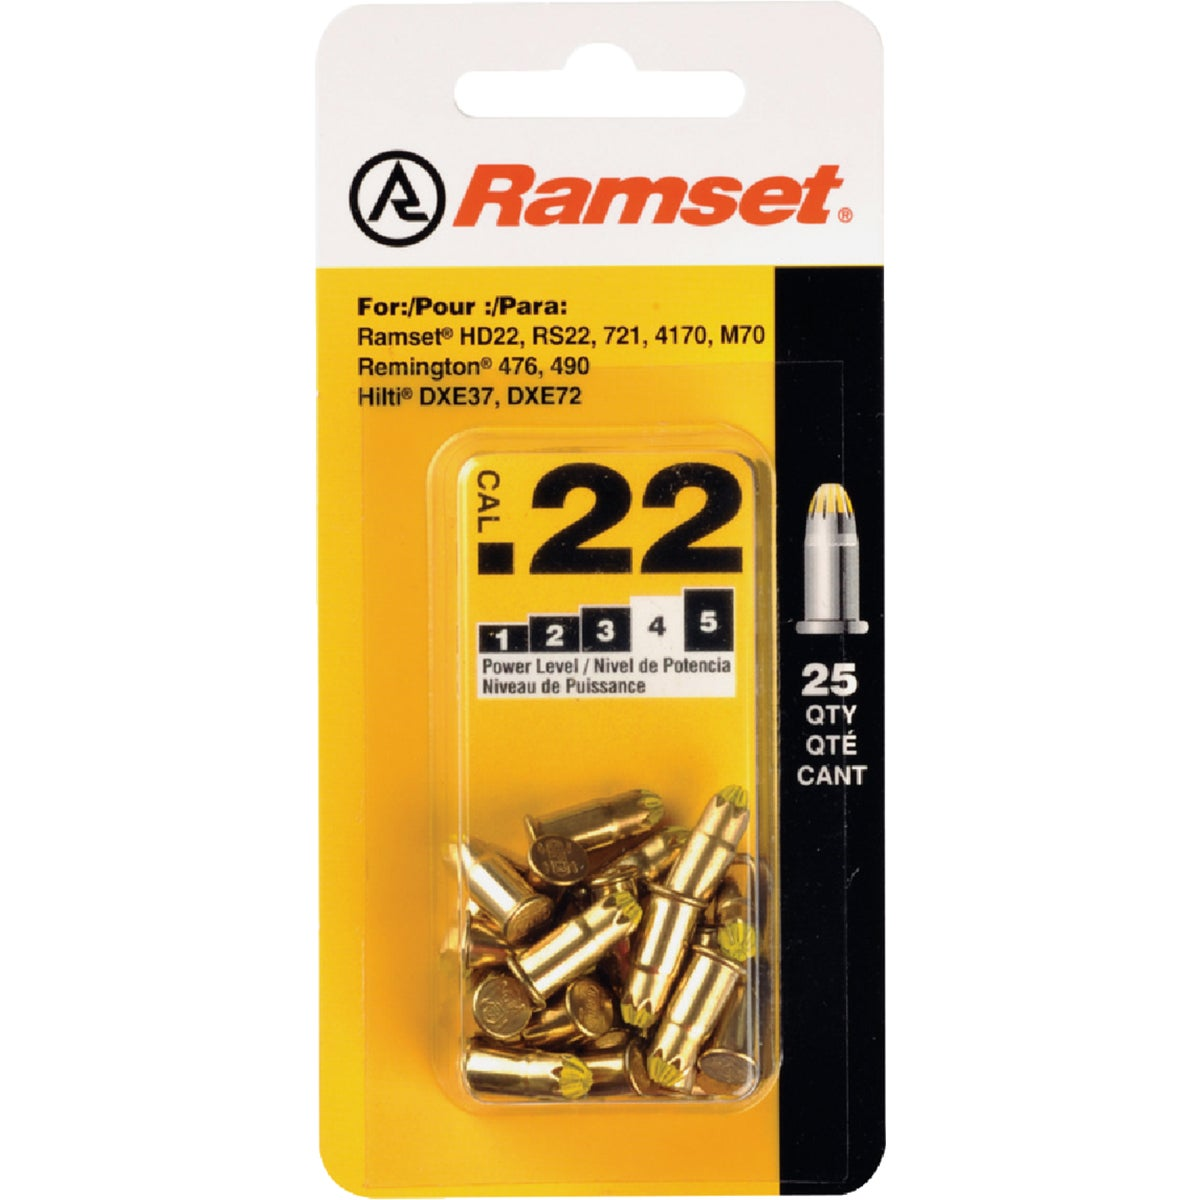 25PK .22 YELLOW LOADS - 50077 by Itw Brands